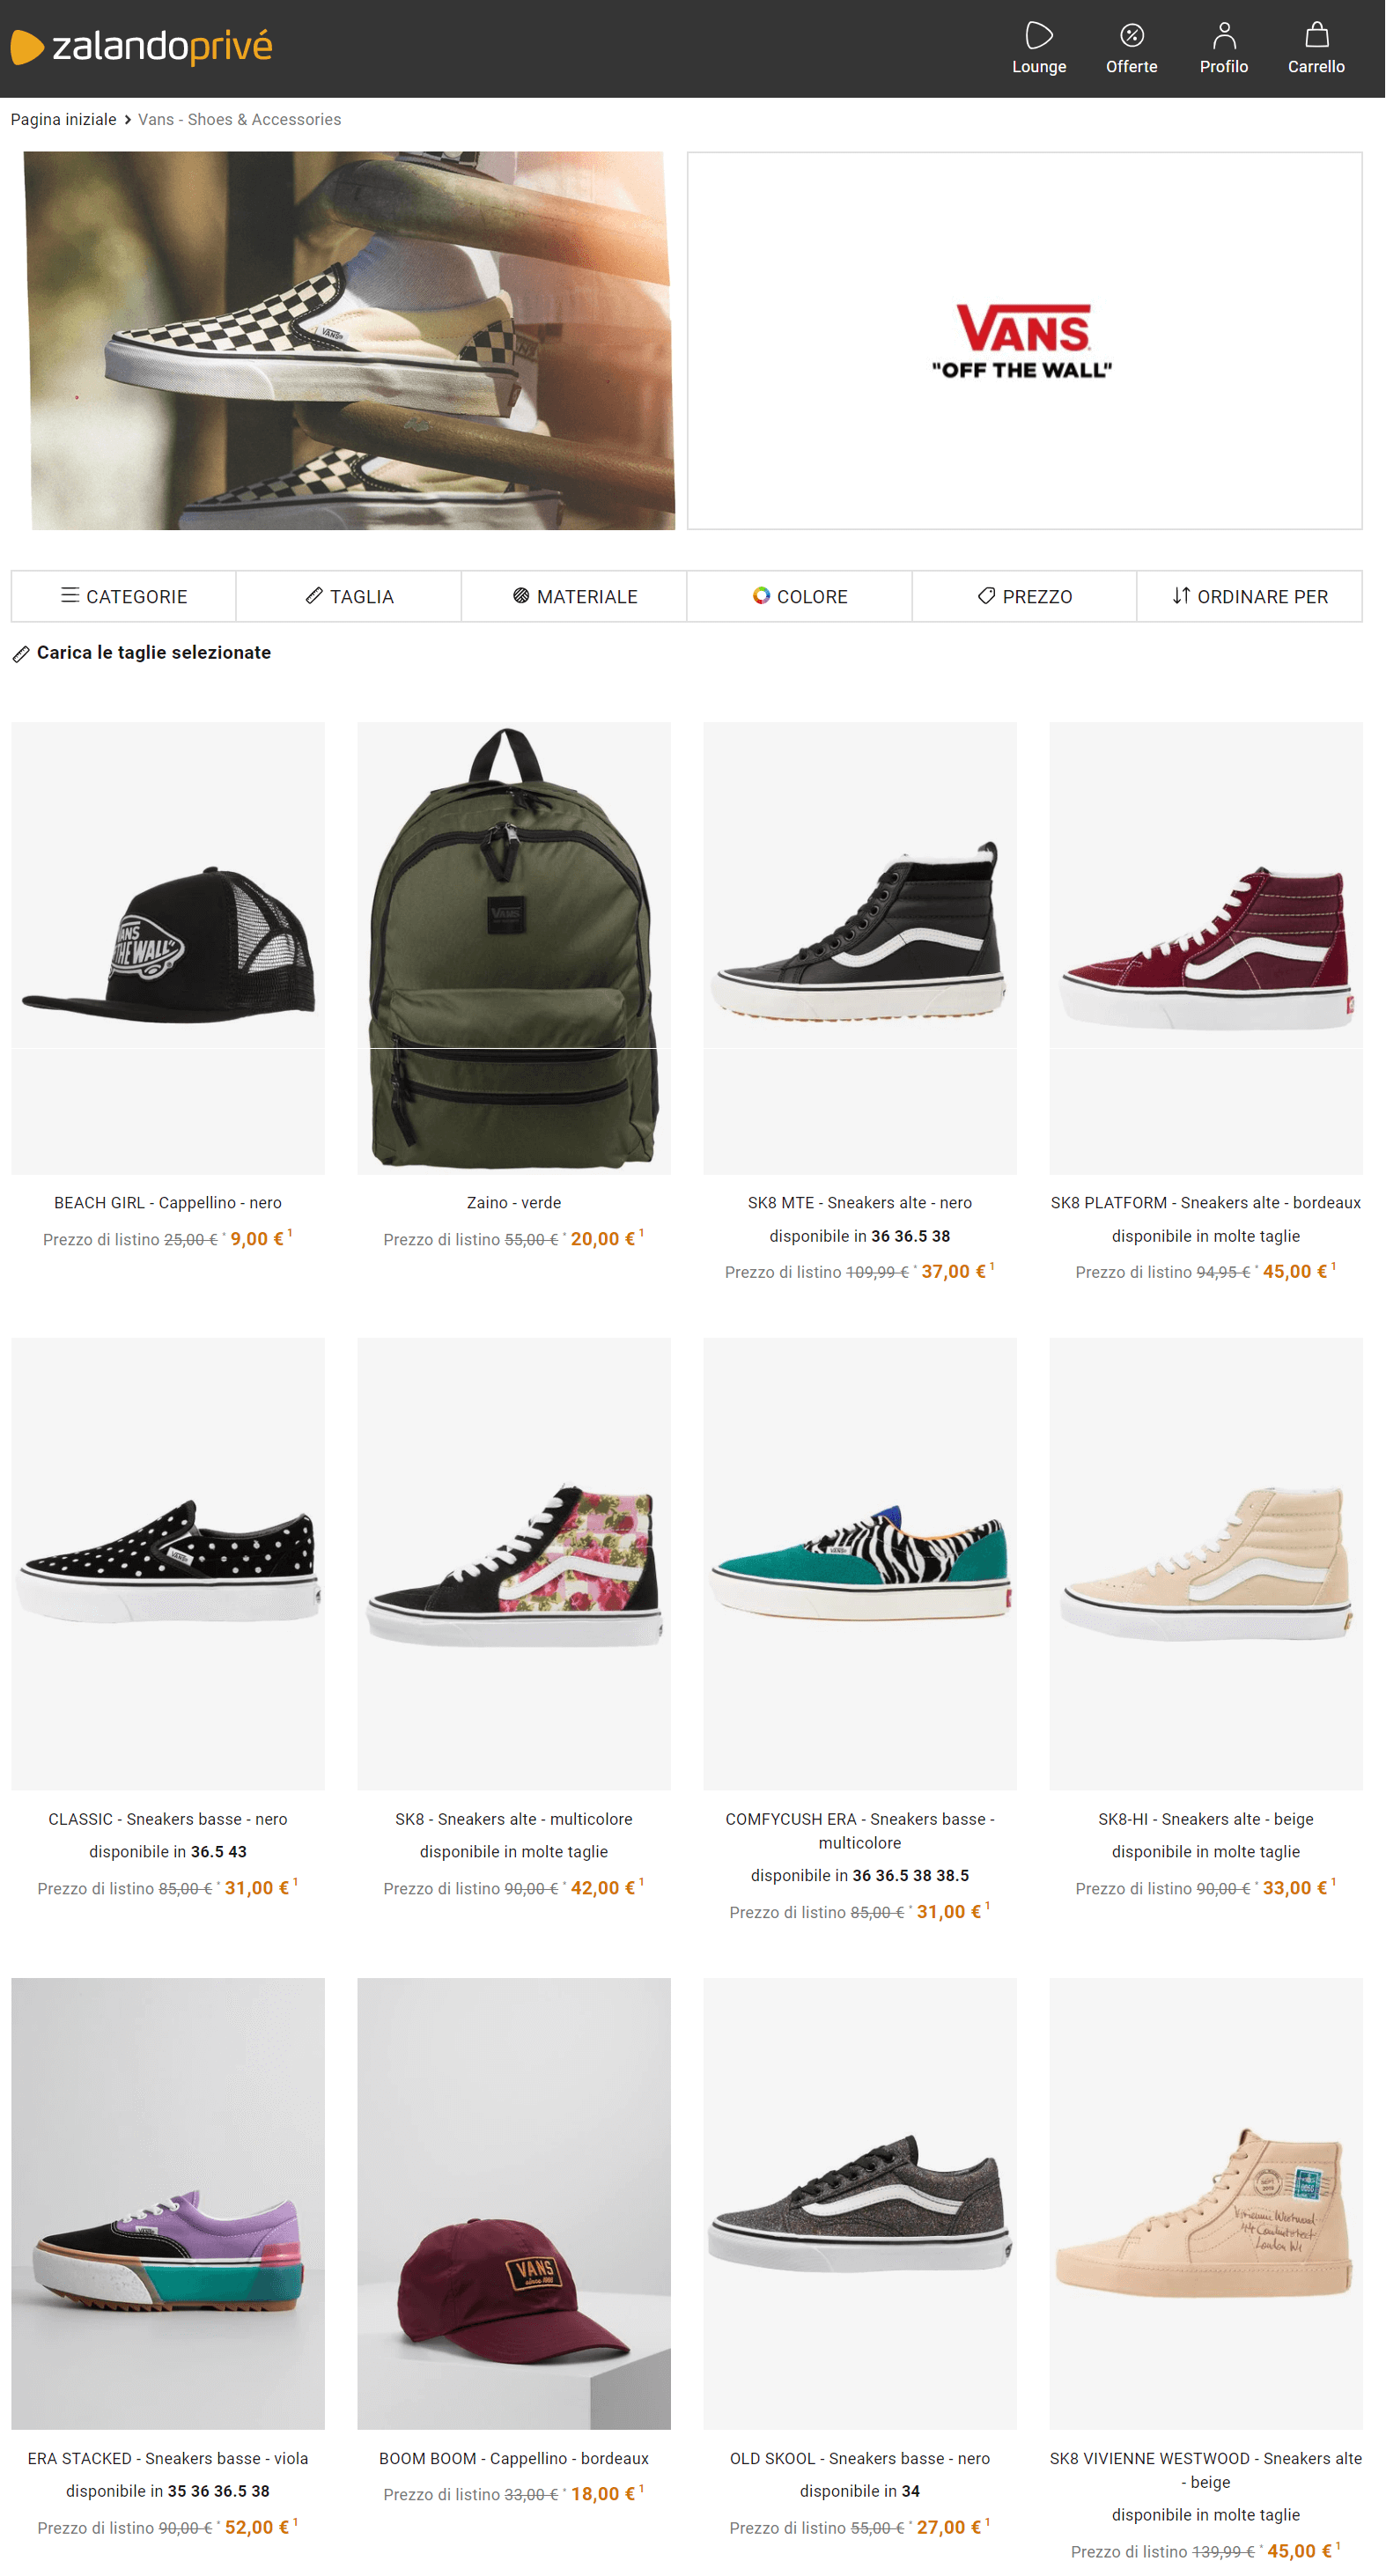 VANS Outlet: online su Zalando Privé! | Zalando Privé IT